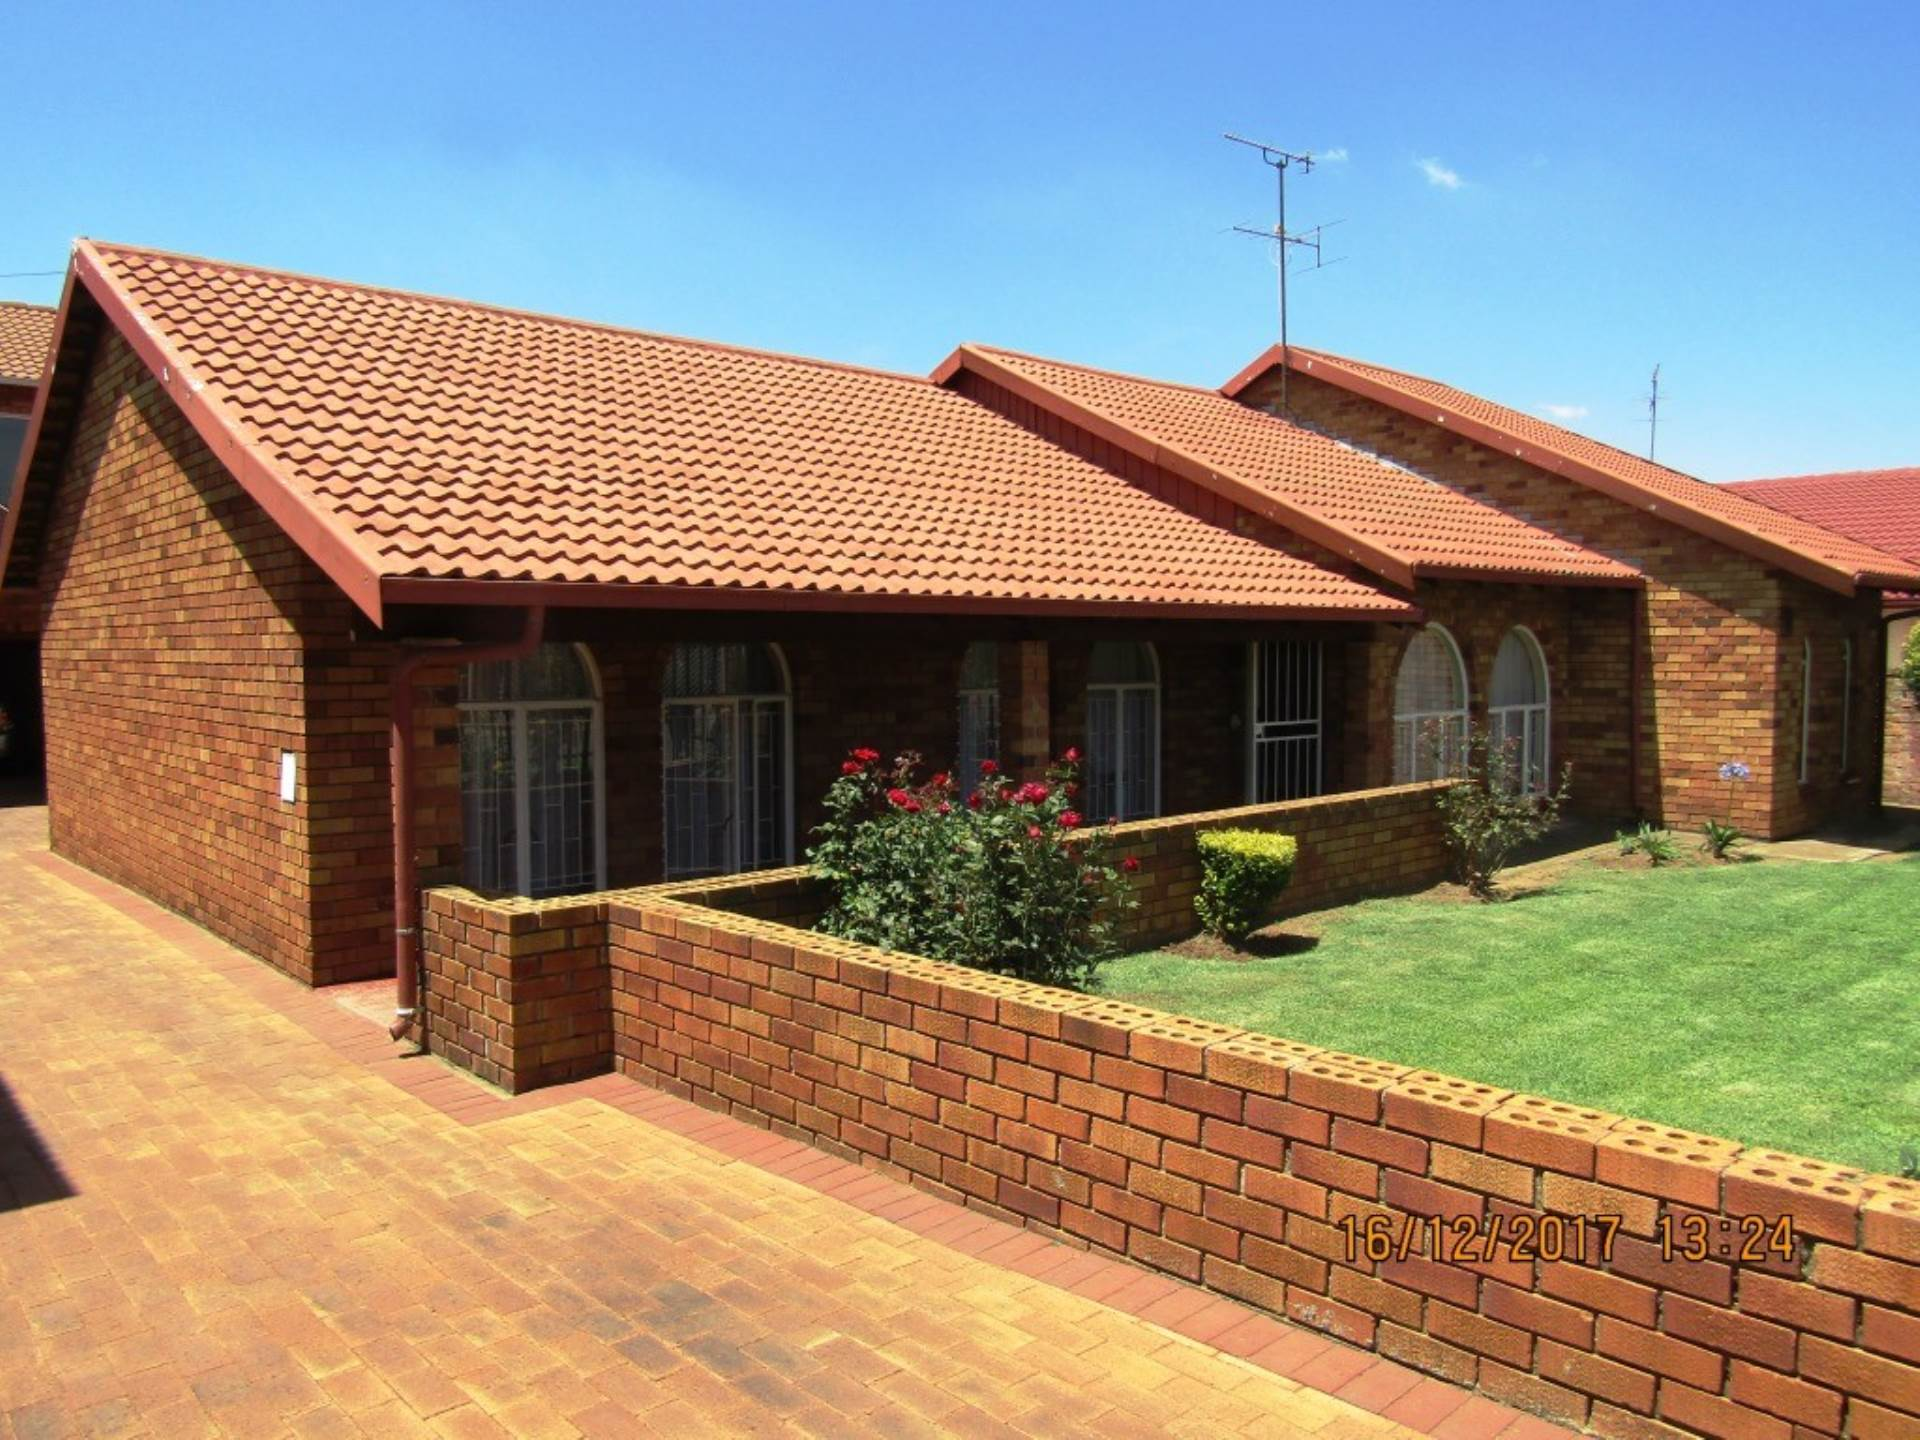 3 BedroomHouse For Sale In Bakerton